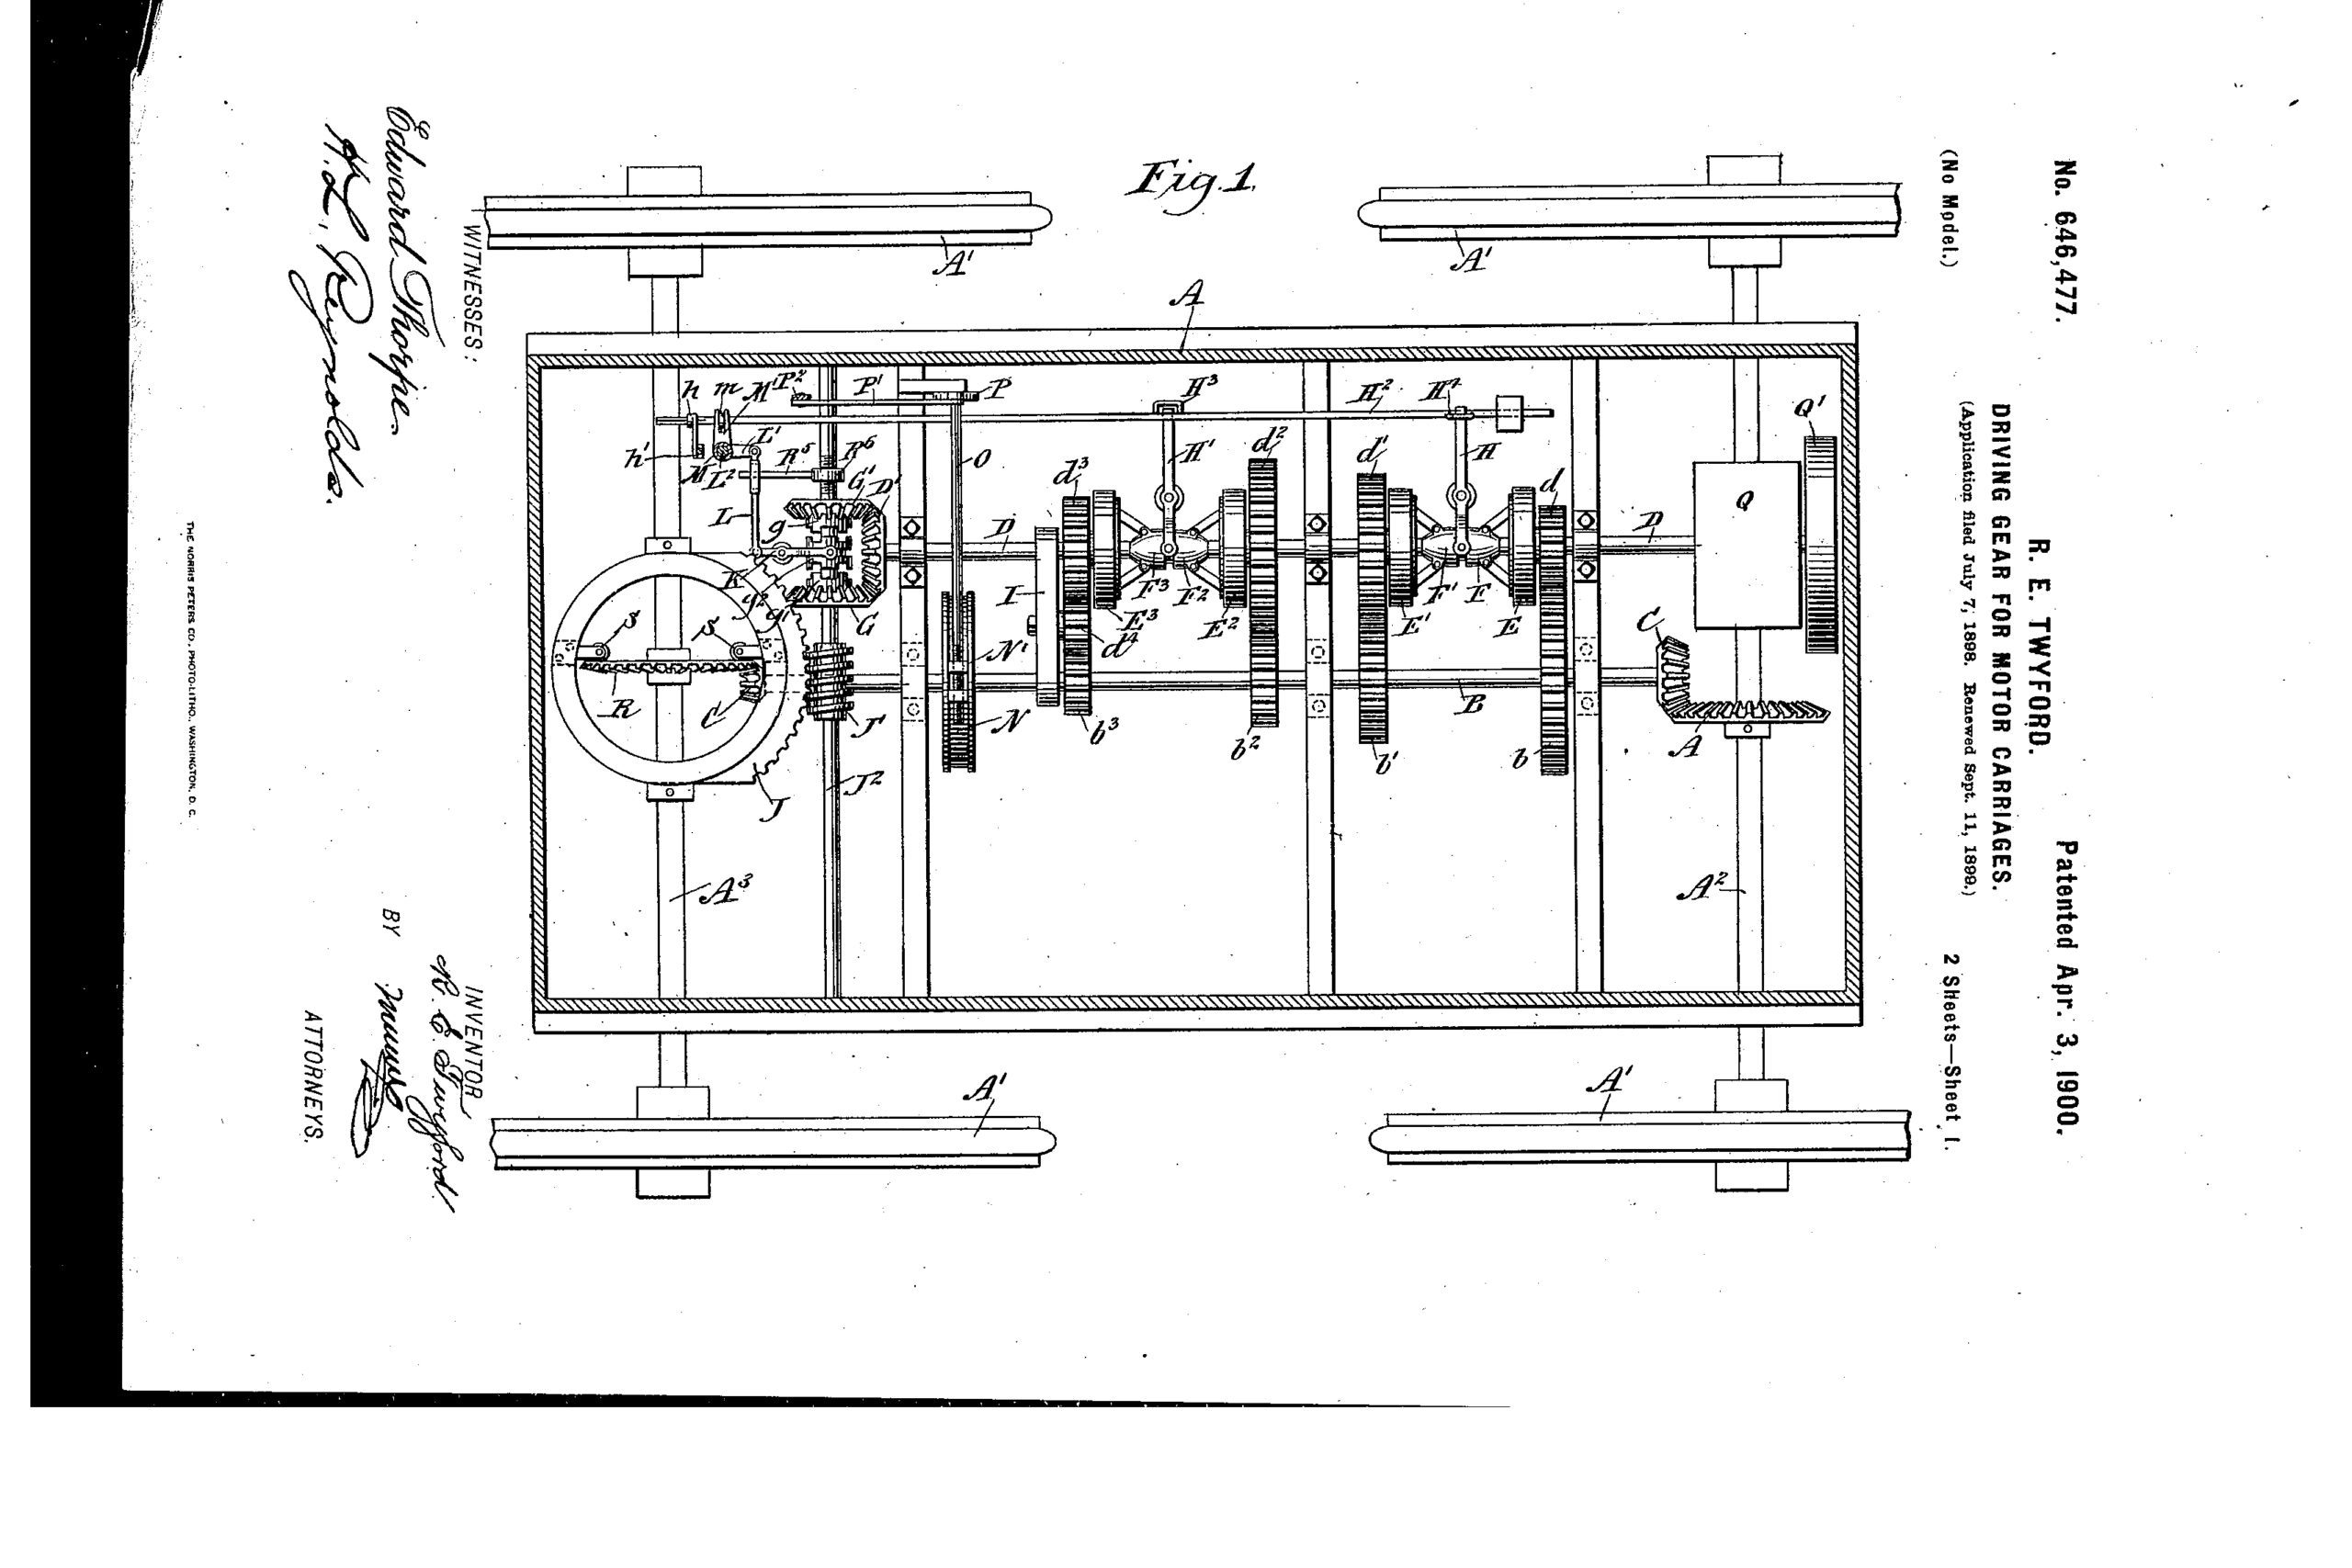 first four-wheel-drive Twyford patent